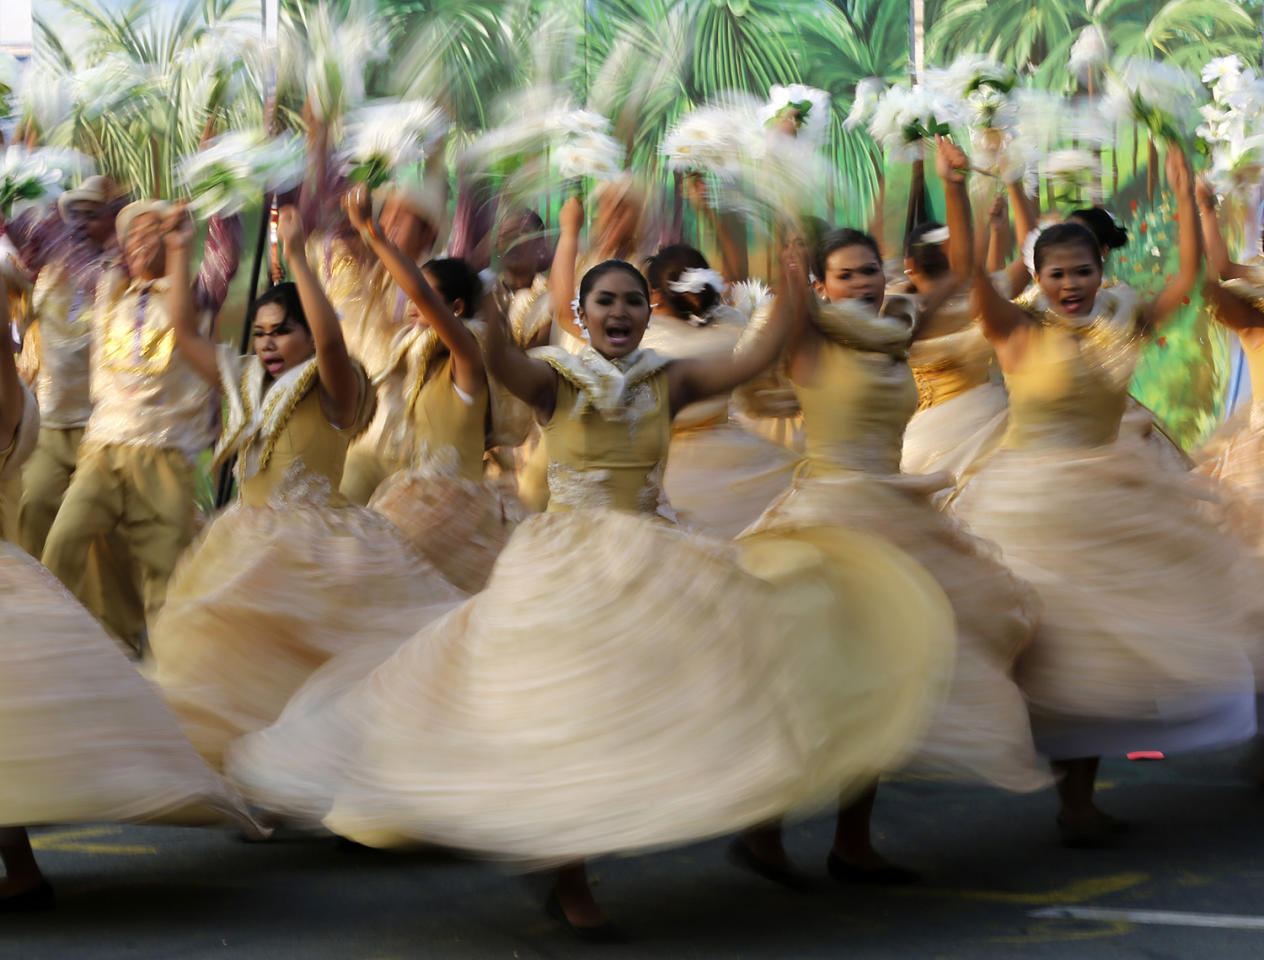 <p>A picture taken with a slow shutter speed shows Filipino performers wearing traditional costumes during a street dance competition as part of the Aliwan Festival in Manila, Philippines, April 22, 2017. (Photo: Francis R. Malasig/EPA) </p>